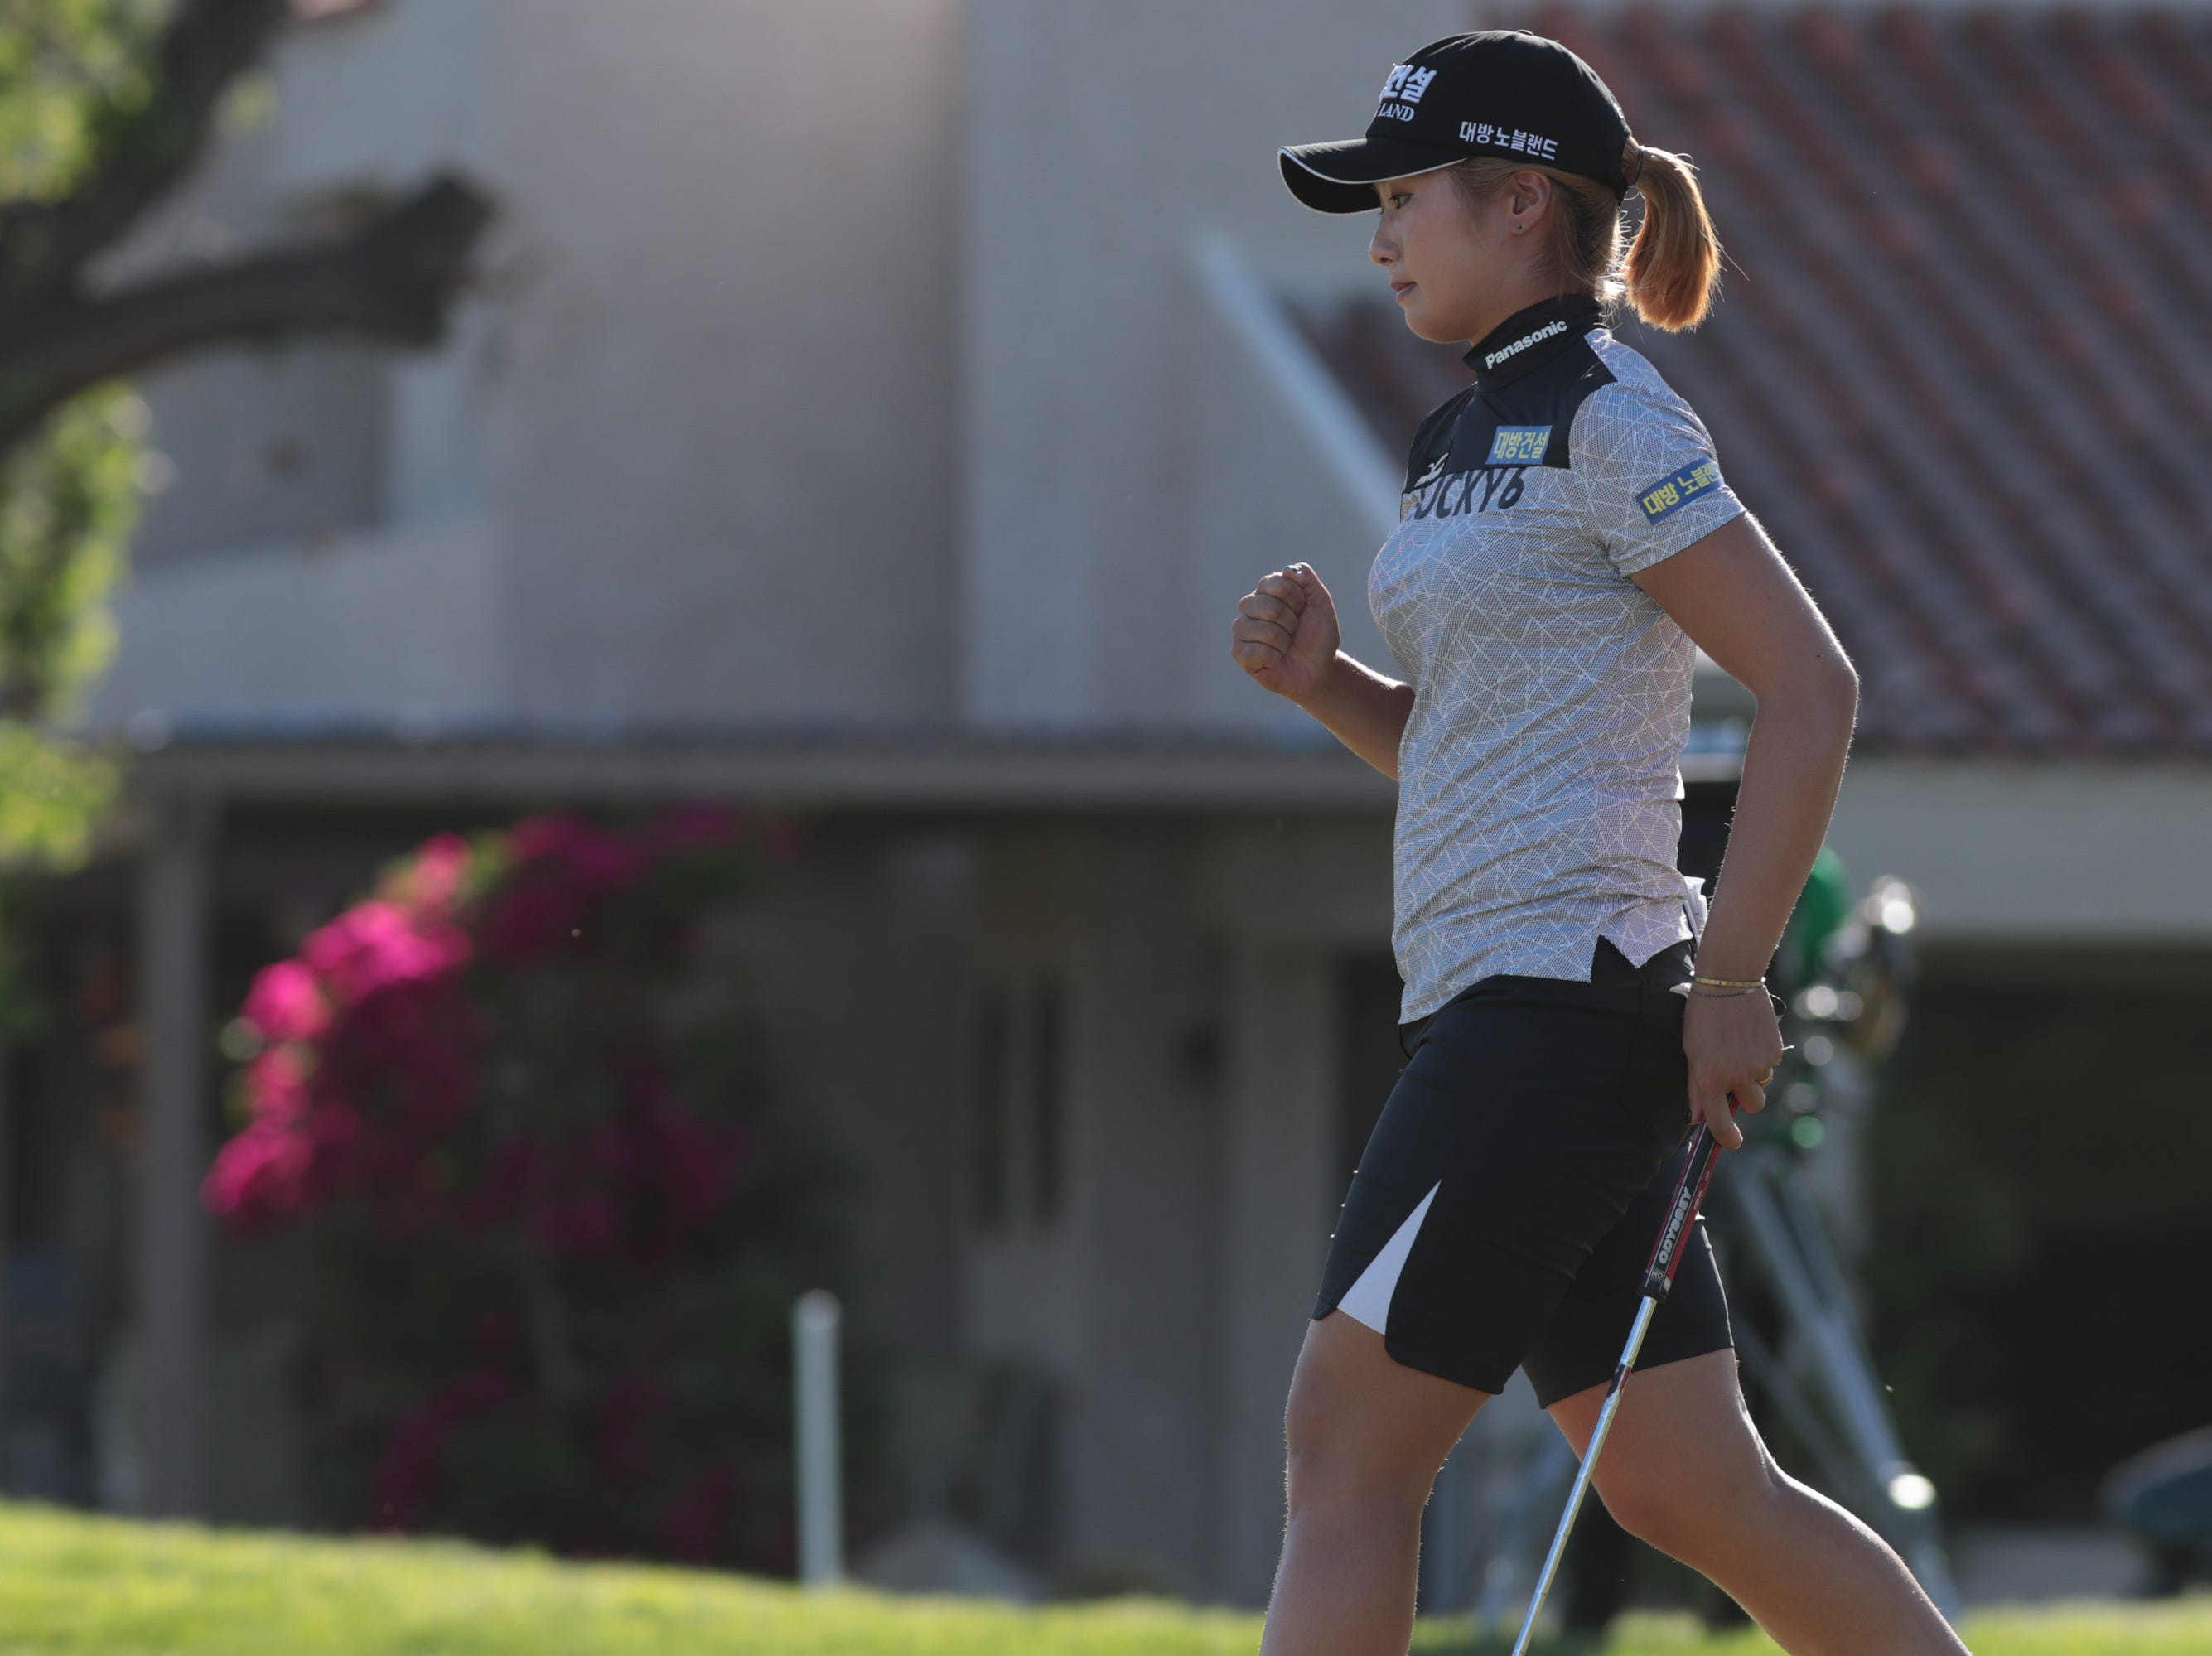 Jeongeun Lee reacts after a putt on the 16th hole of the Dinah Shore Course at the ANA Inspiration, Rancho Mirage, Calif., April 6, 2019.